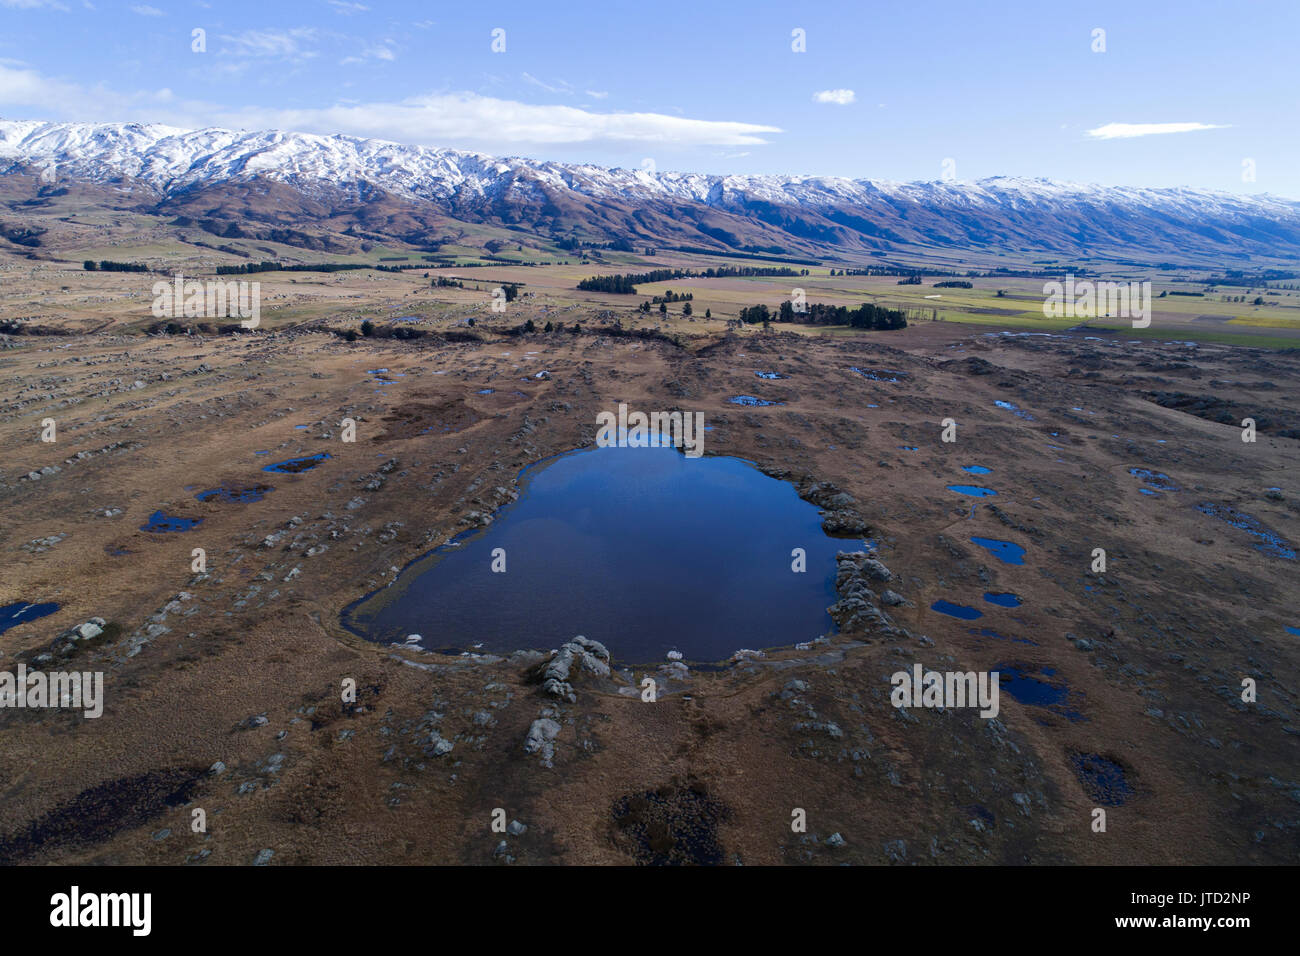 Sutton Salt Lake, and Rock and Pillar Range, Sutton, near Middlemarch, Strath Taieri, Otago, South Island, New Zealand - drone aerial - Stock Image